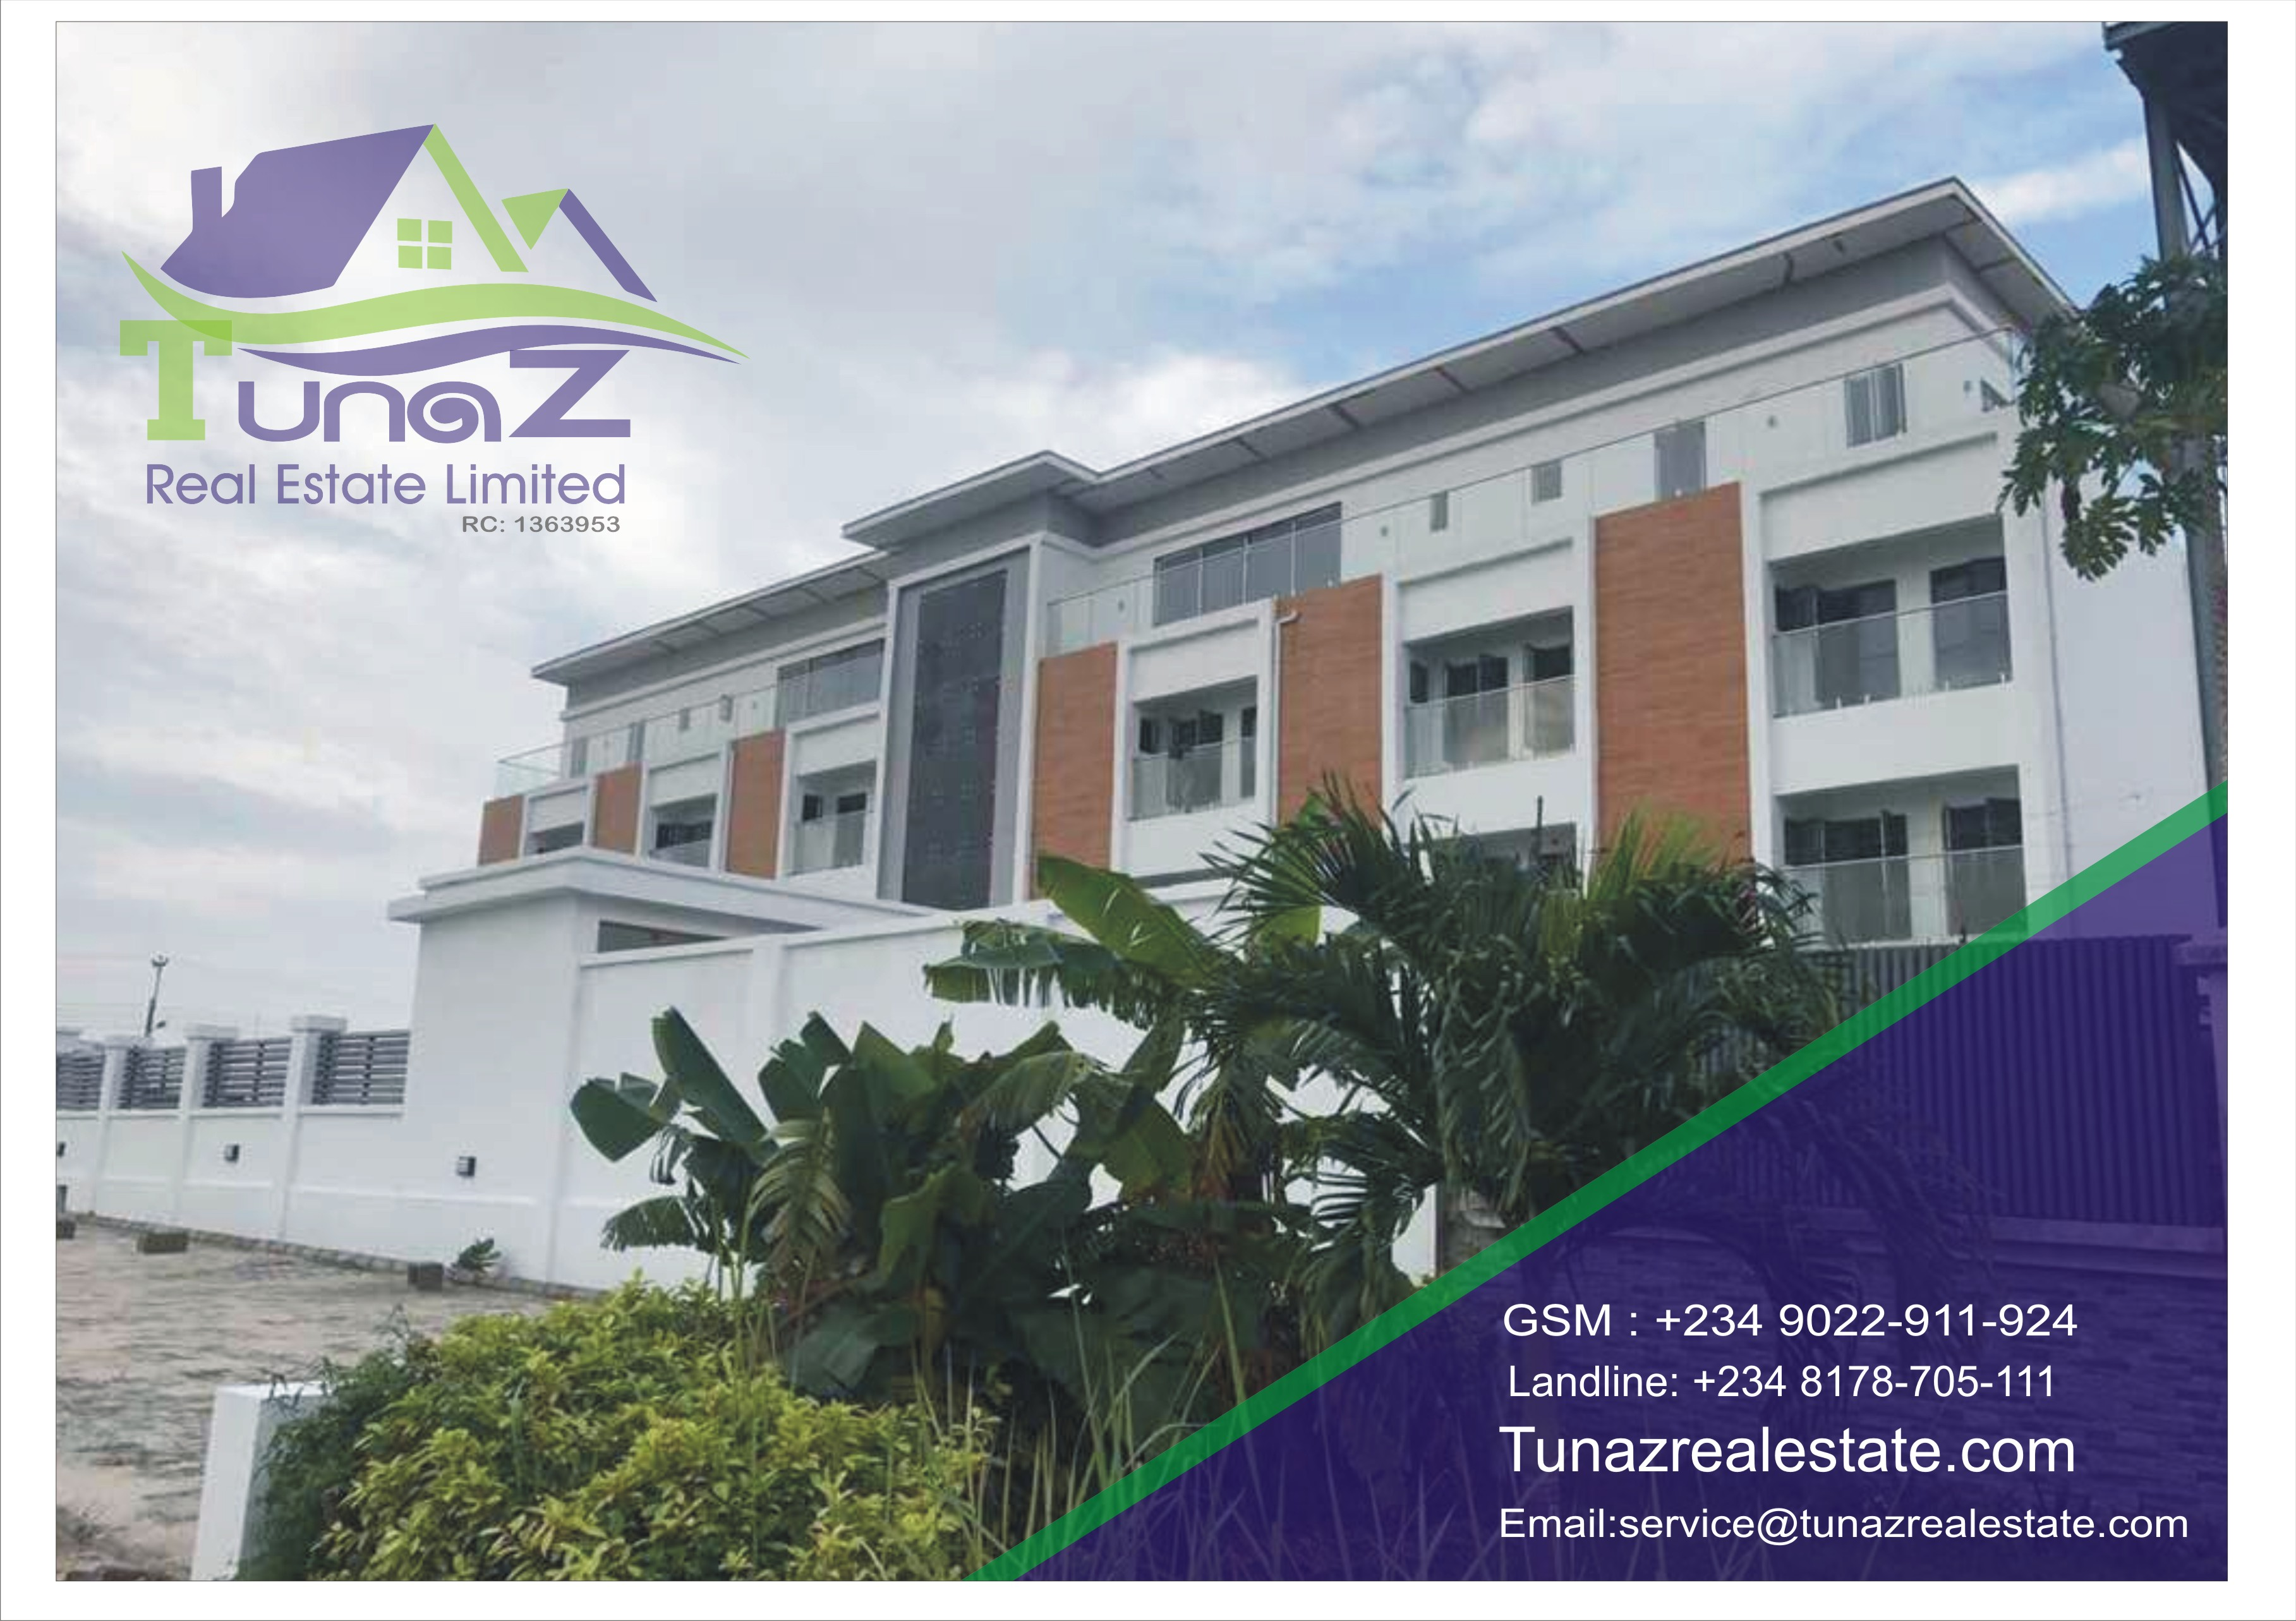 6 Units Of A 4 Bedroom Terrace Duplex – Which Is Set On 3 Floors For Sale